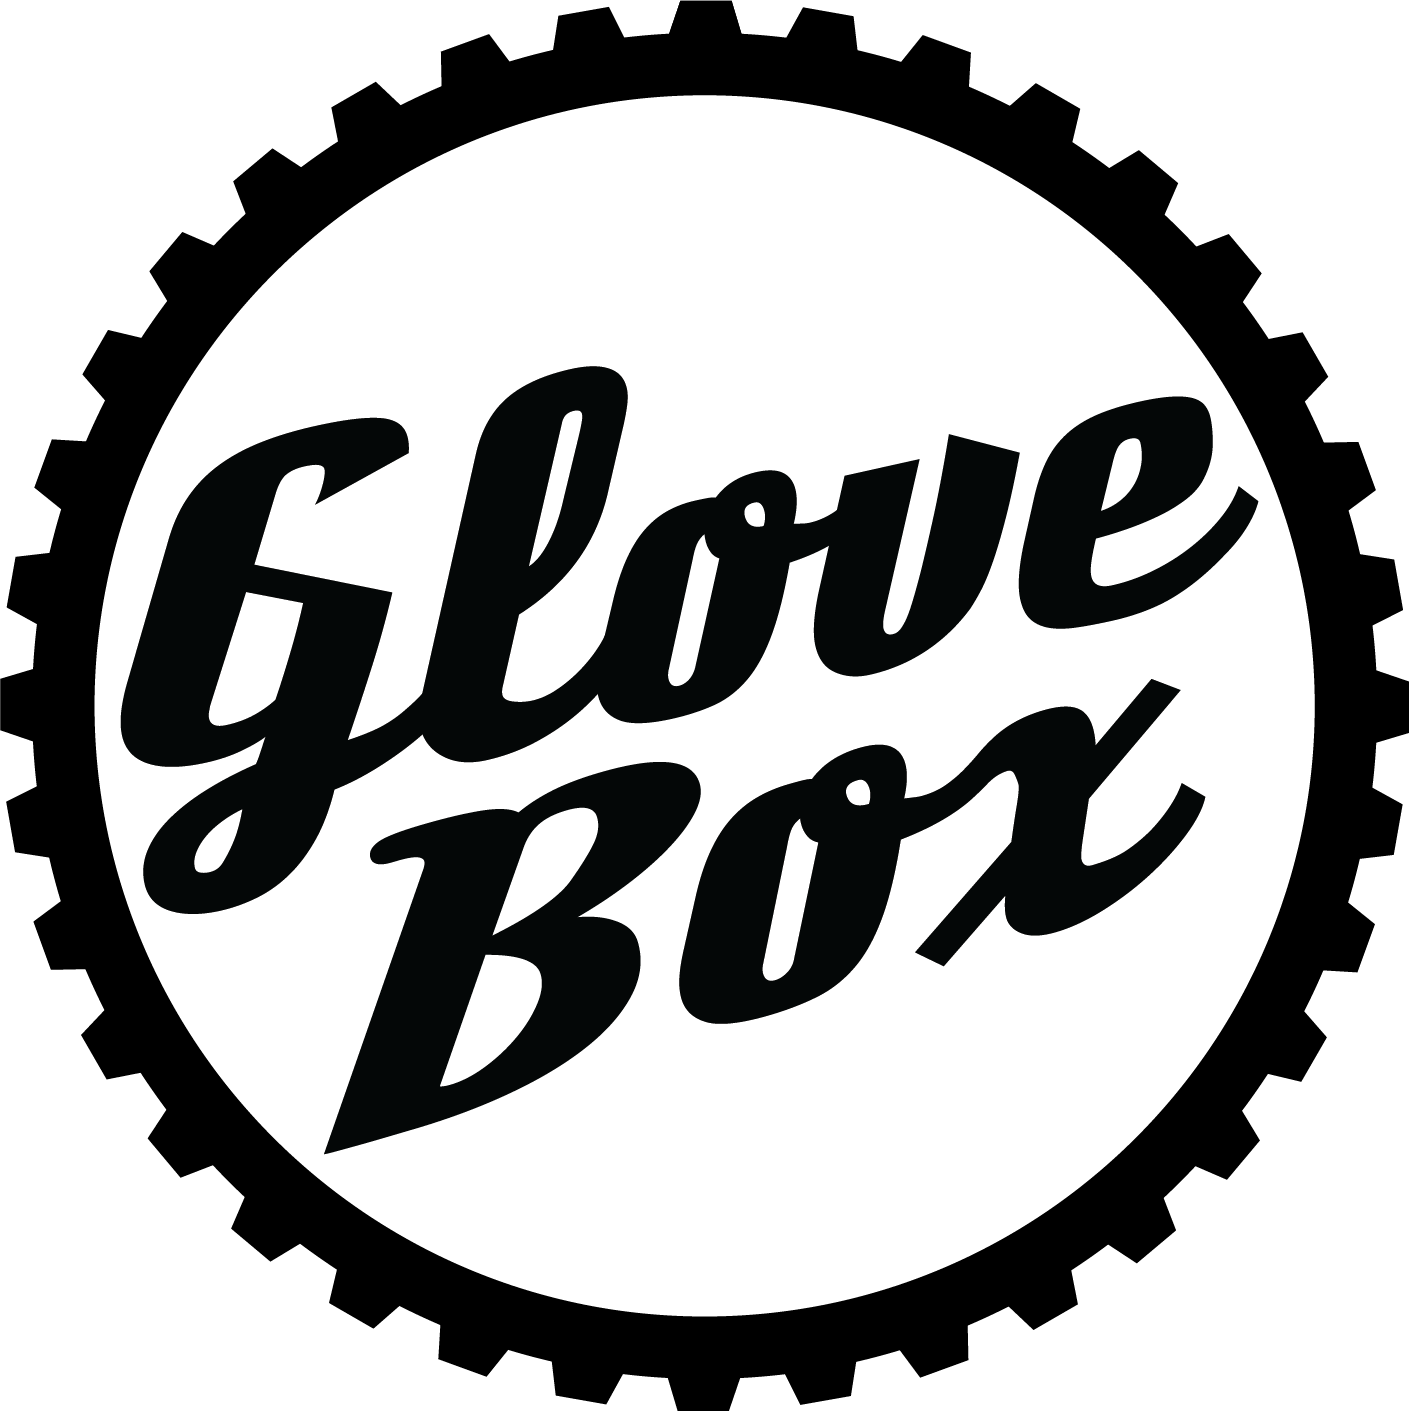 GloveBox: Car Care Made Simple